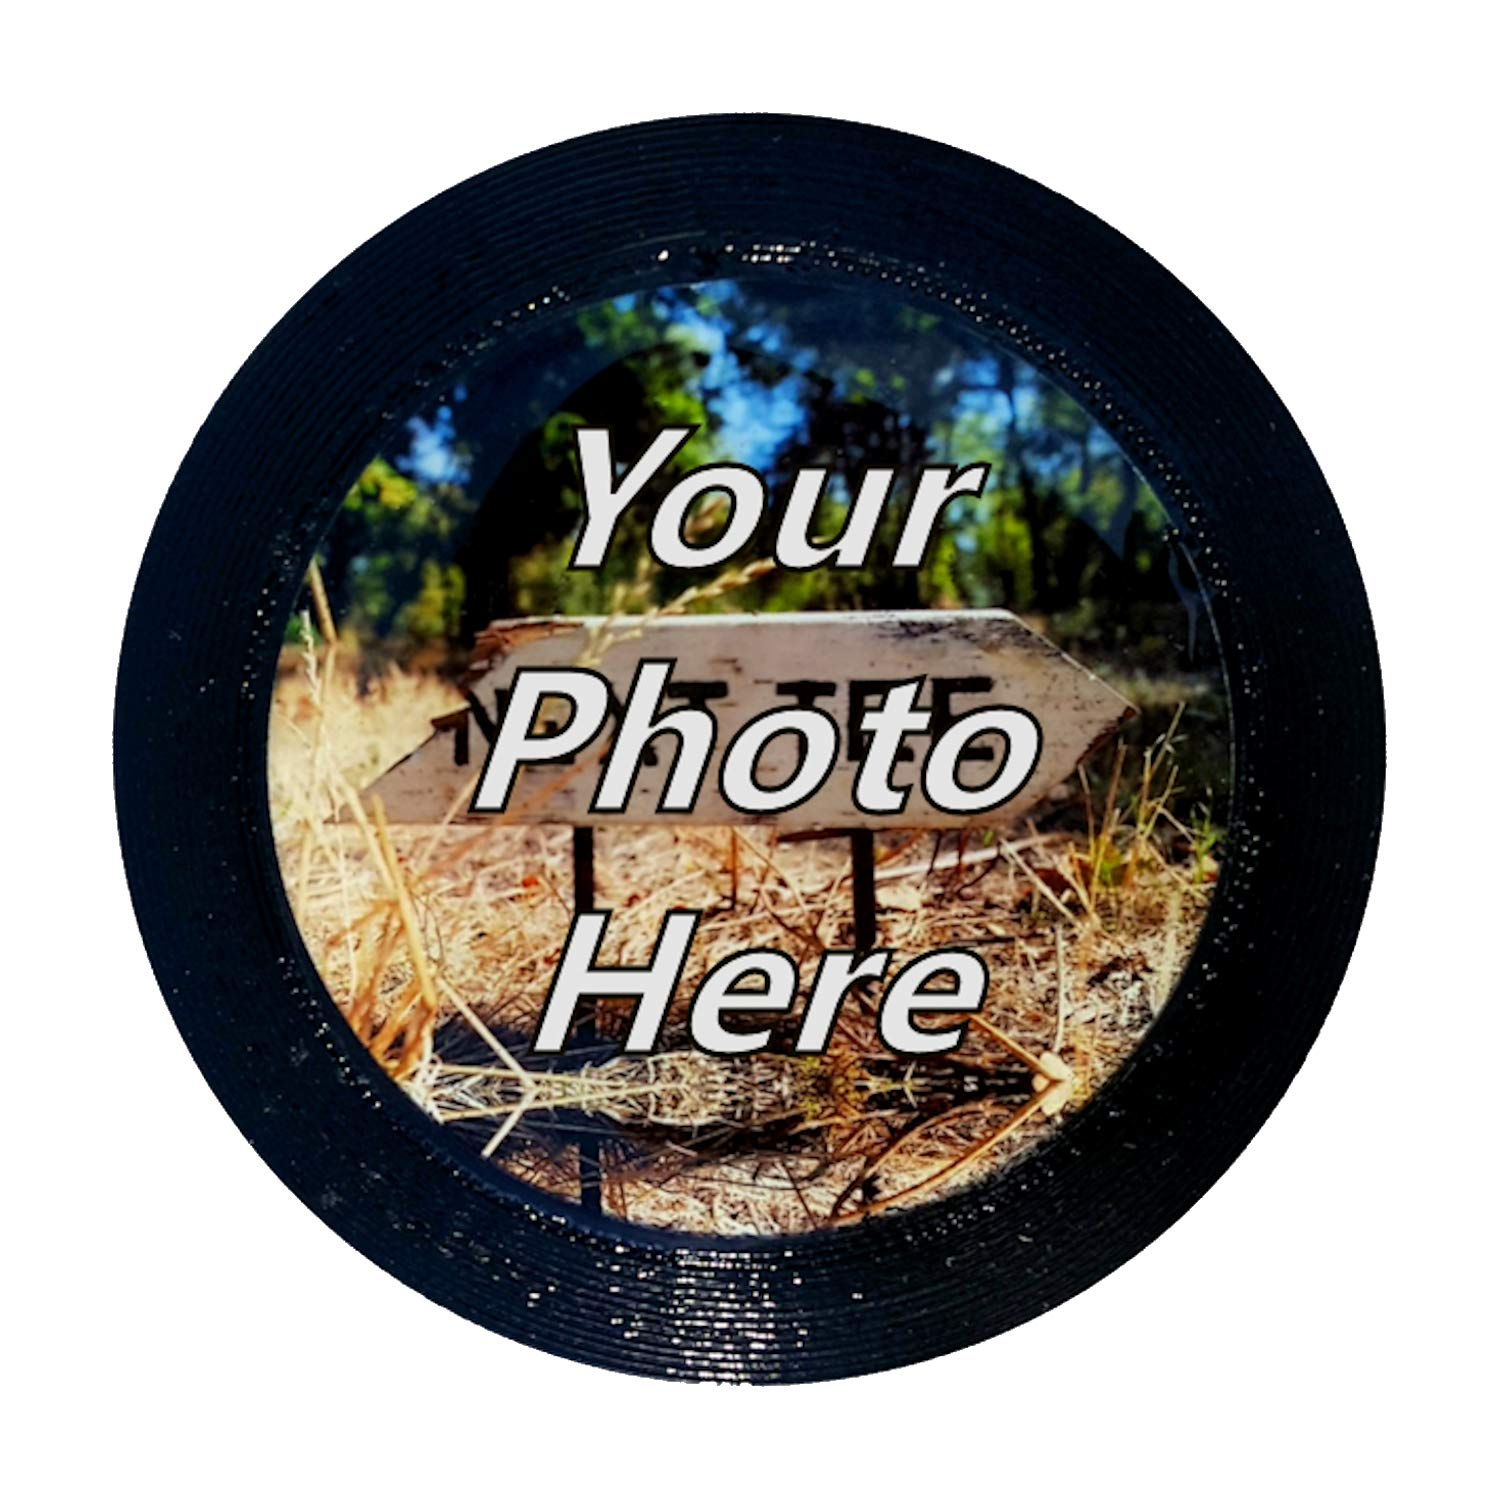 Disc Golf Mini Marker - Regulation Sized 2.875'' Diameter Epoxy Domed Mini Marker Customized with Your Photo or Logo (Black)